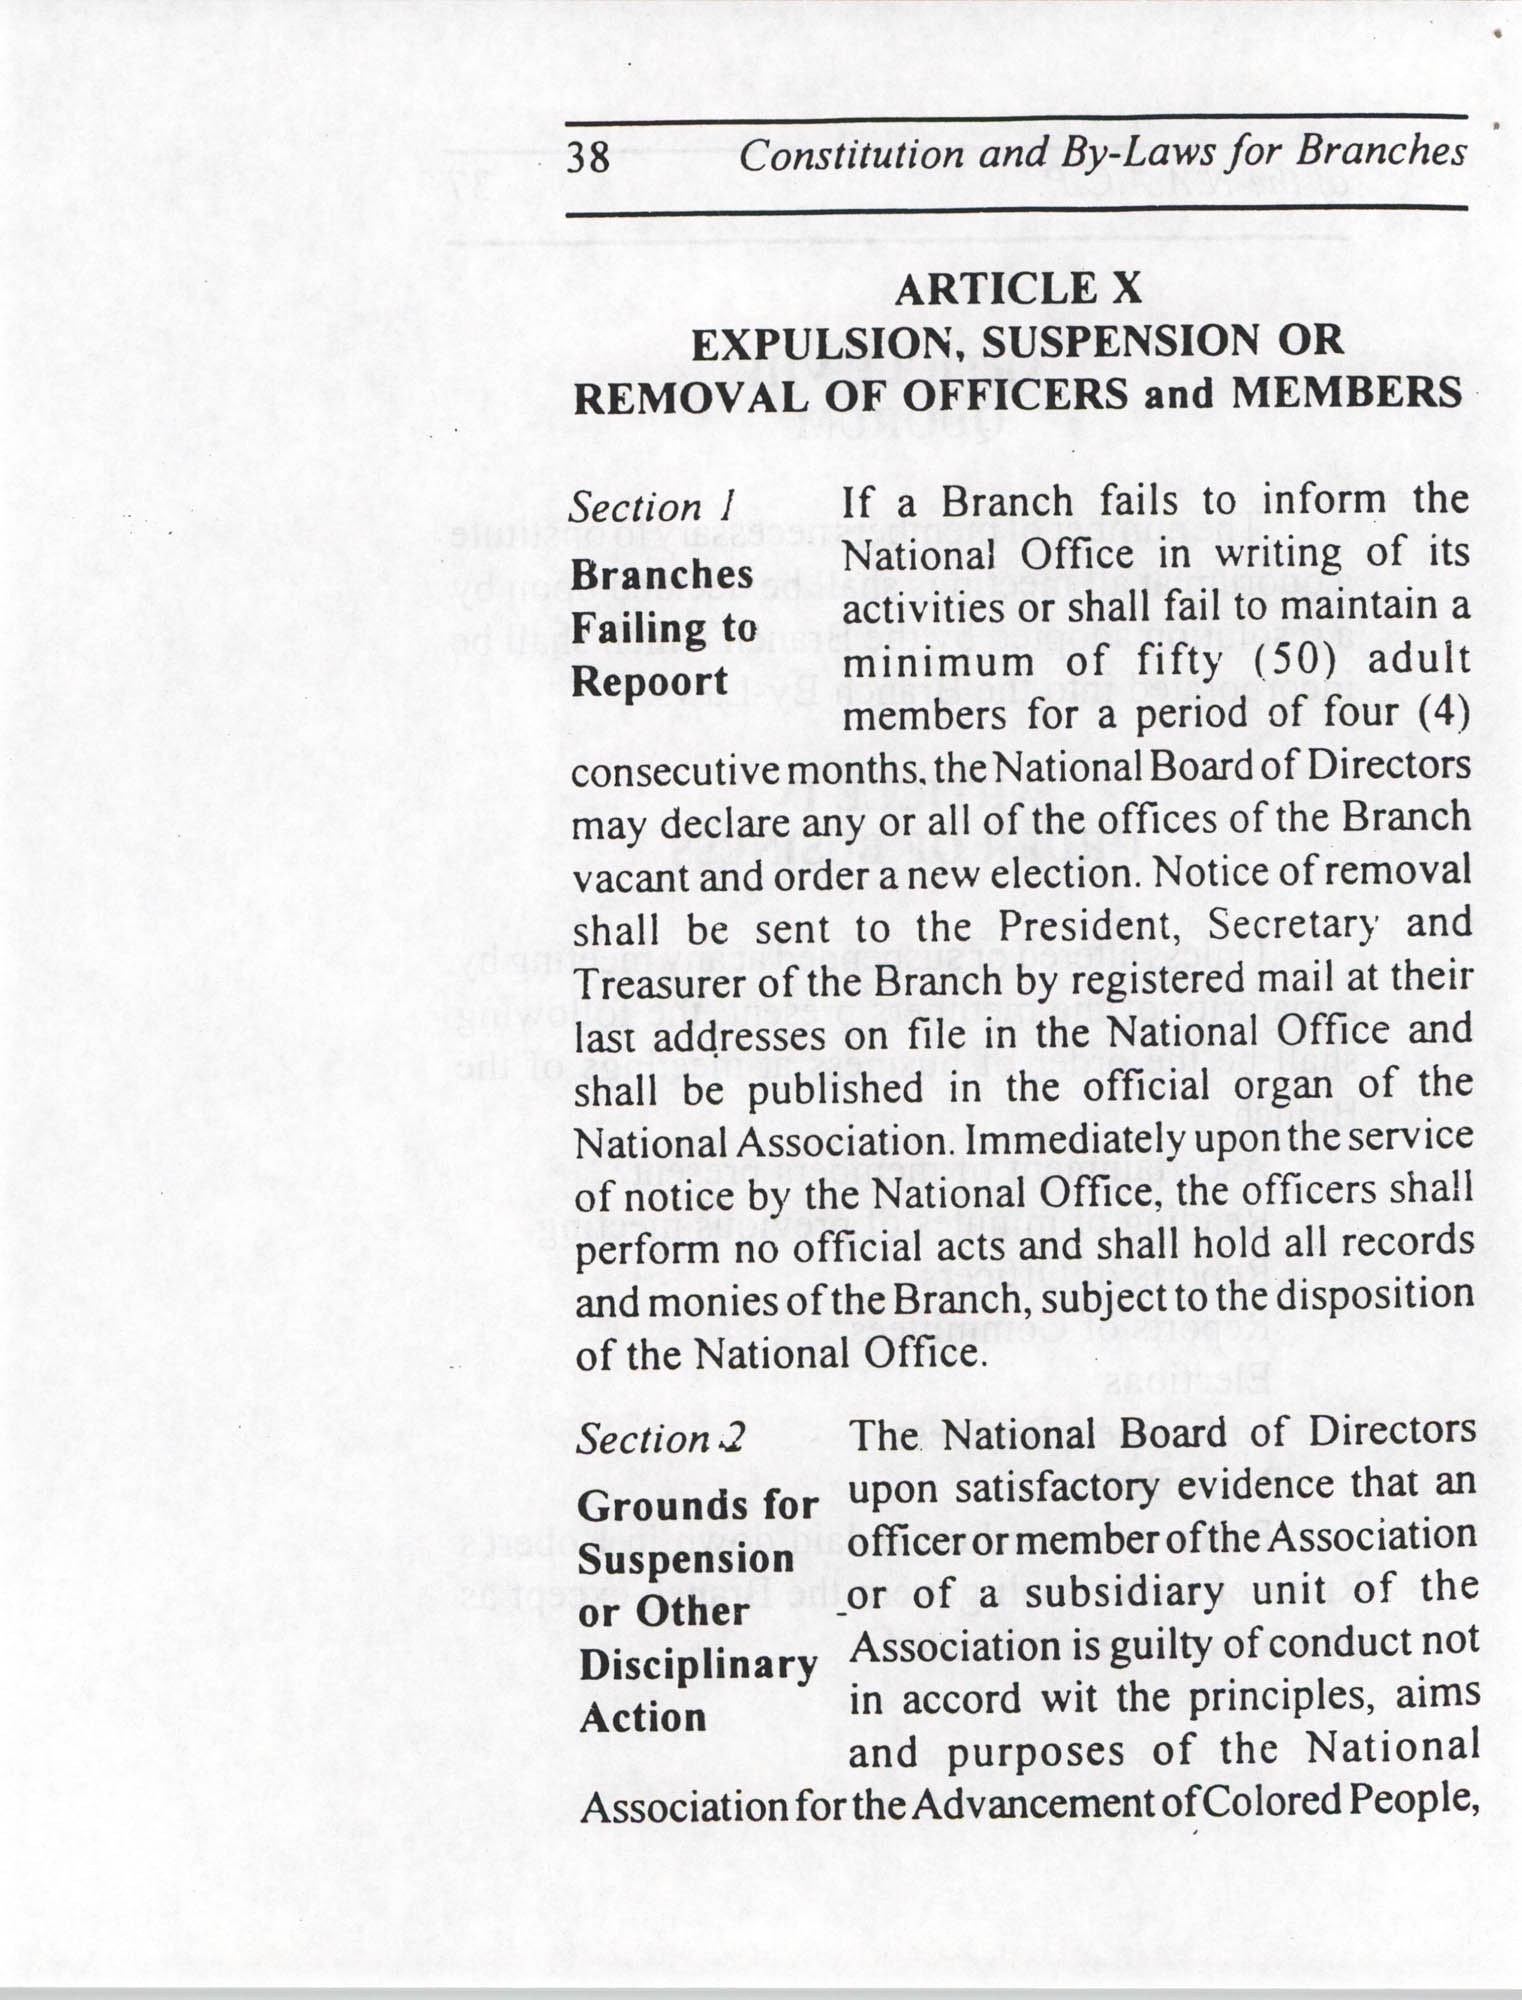 Constitution and By-Laws for Branches of the NAACP, July 1994, Page 38